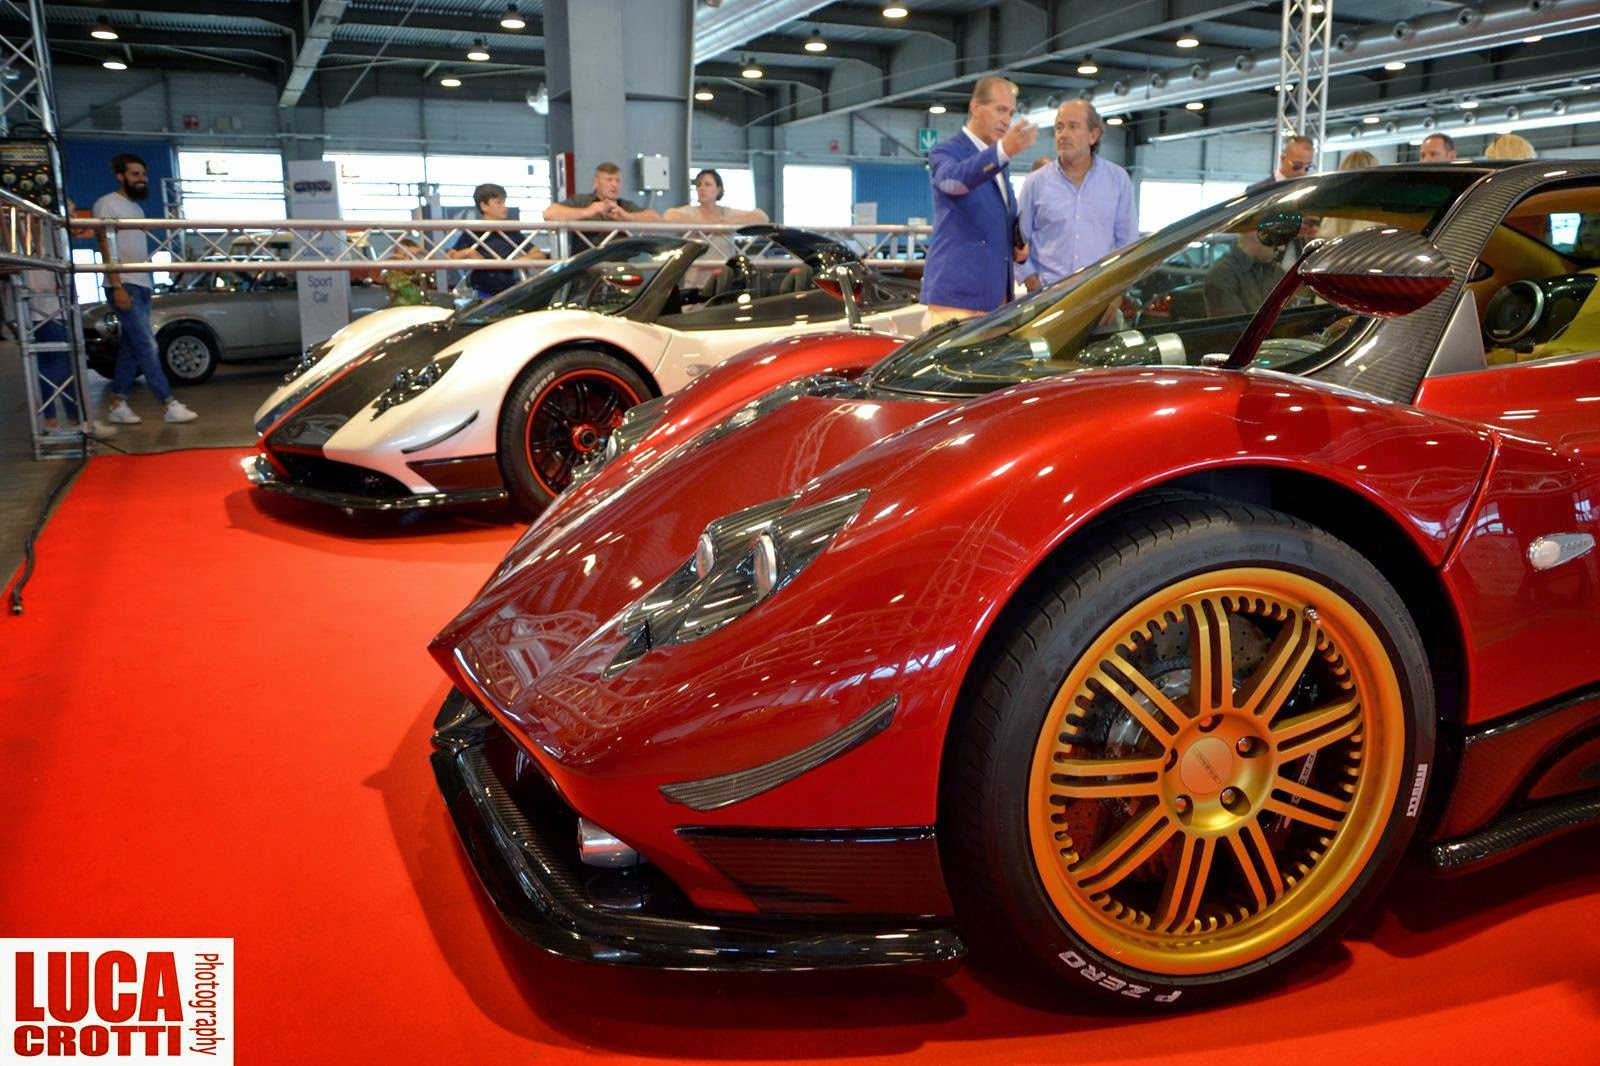 prototype 0 pagani zonda f and cinque roadster at verona legend cars. Black Bedroom Furniture Sets. Home Design Ideas